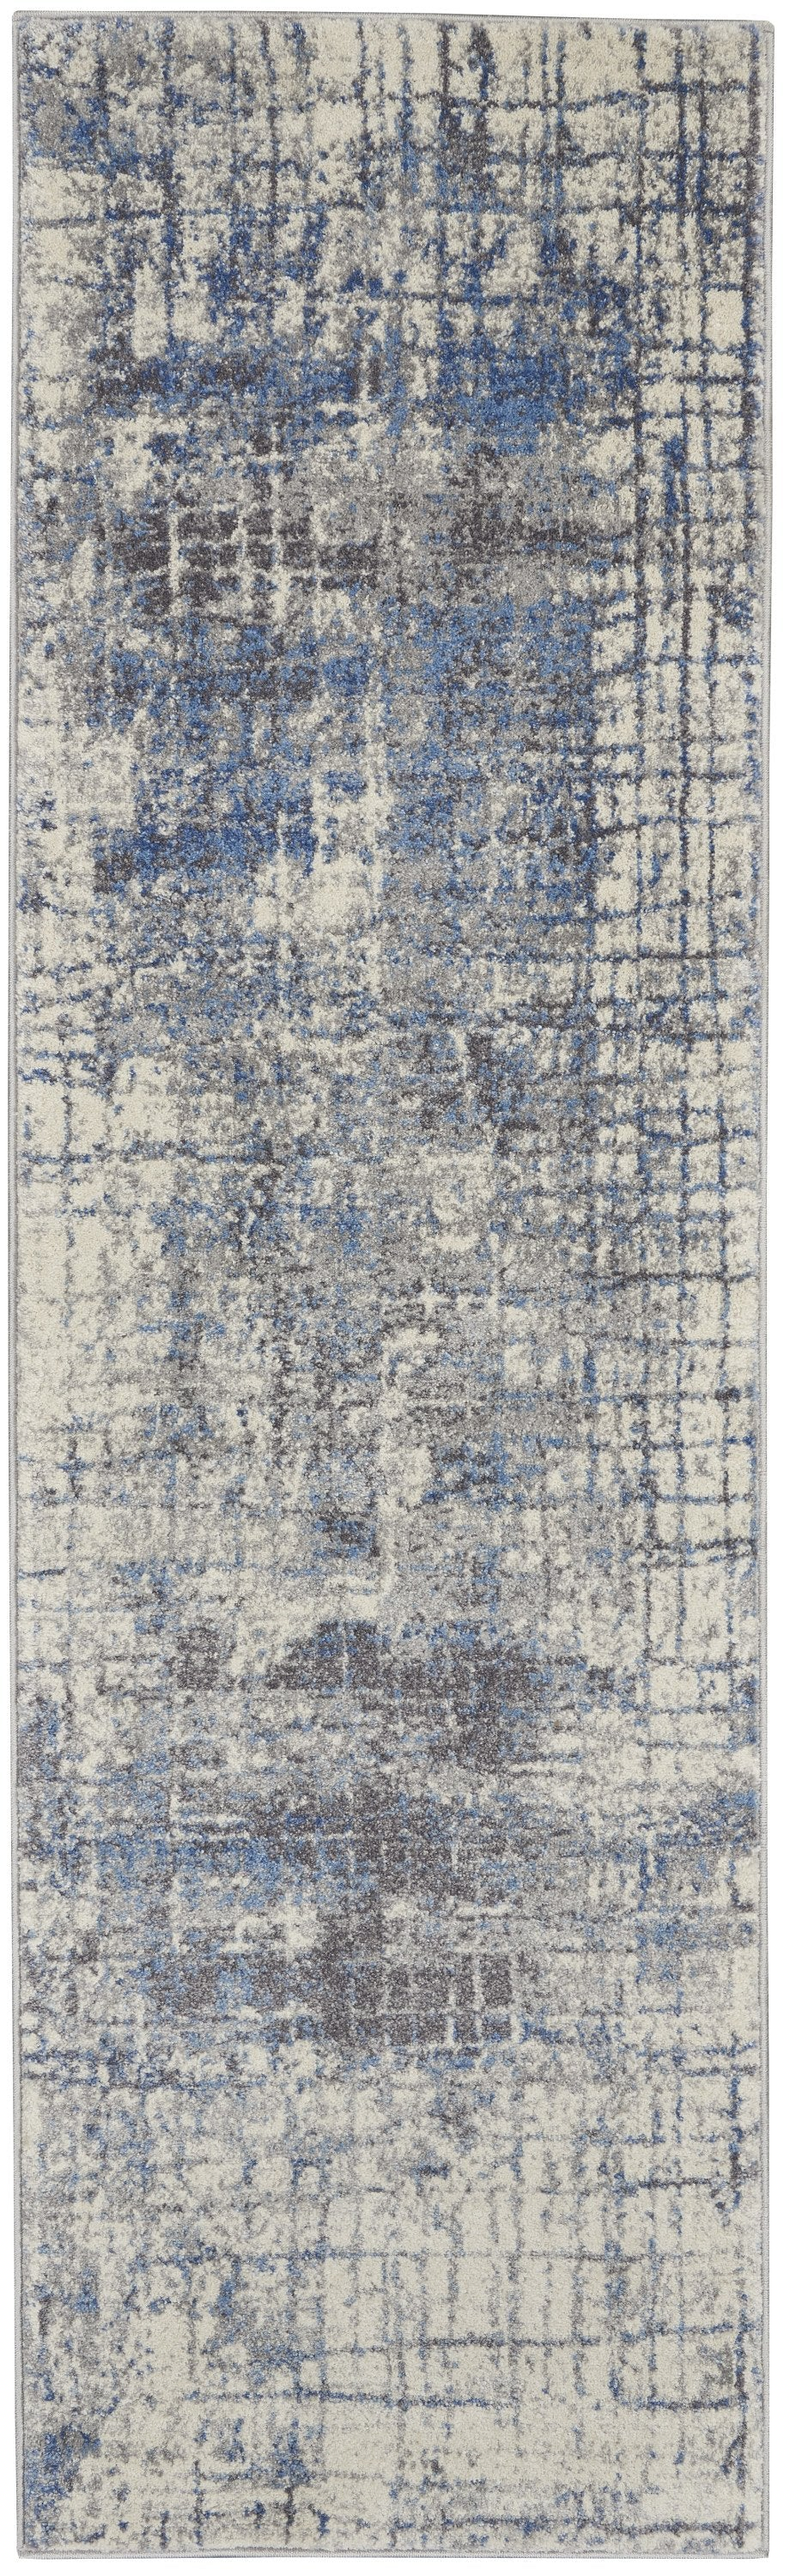 Calvin Klein Ck980 Torrent CK983 Area Rug - Flooring Mats and Turf